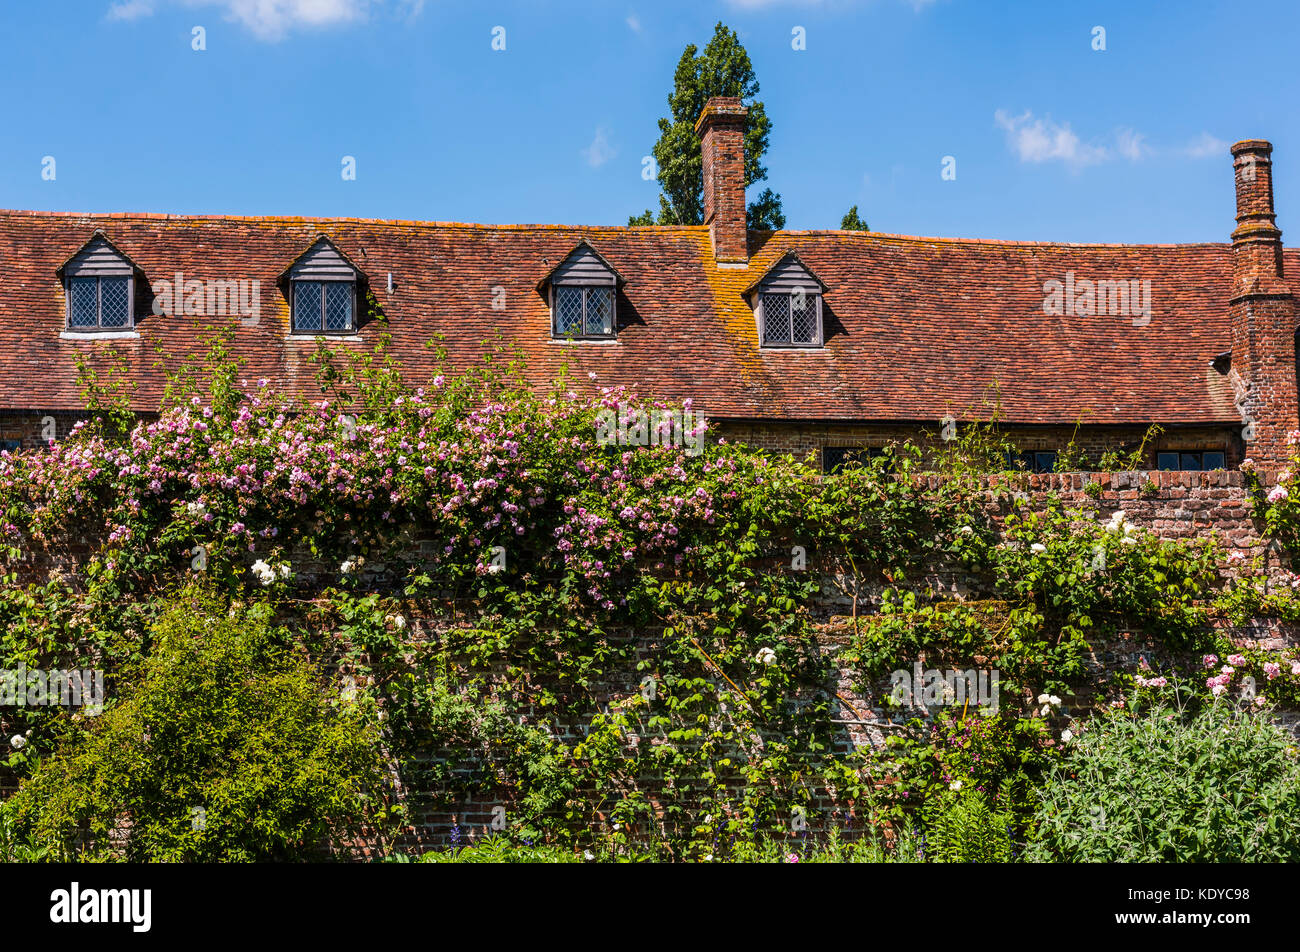 Glorious blue skies and tiled roof at Sissinghurst Gardens, Kent, UK - Stock Image